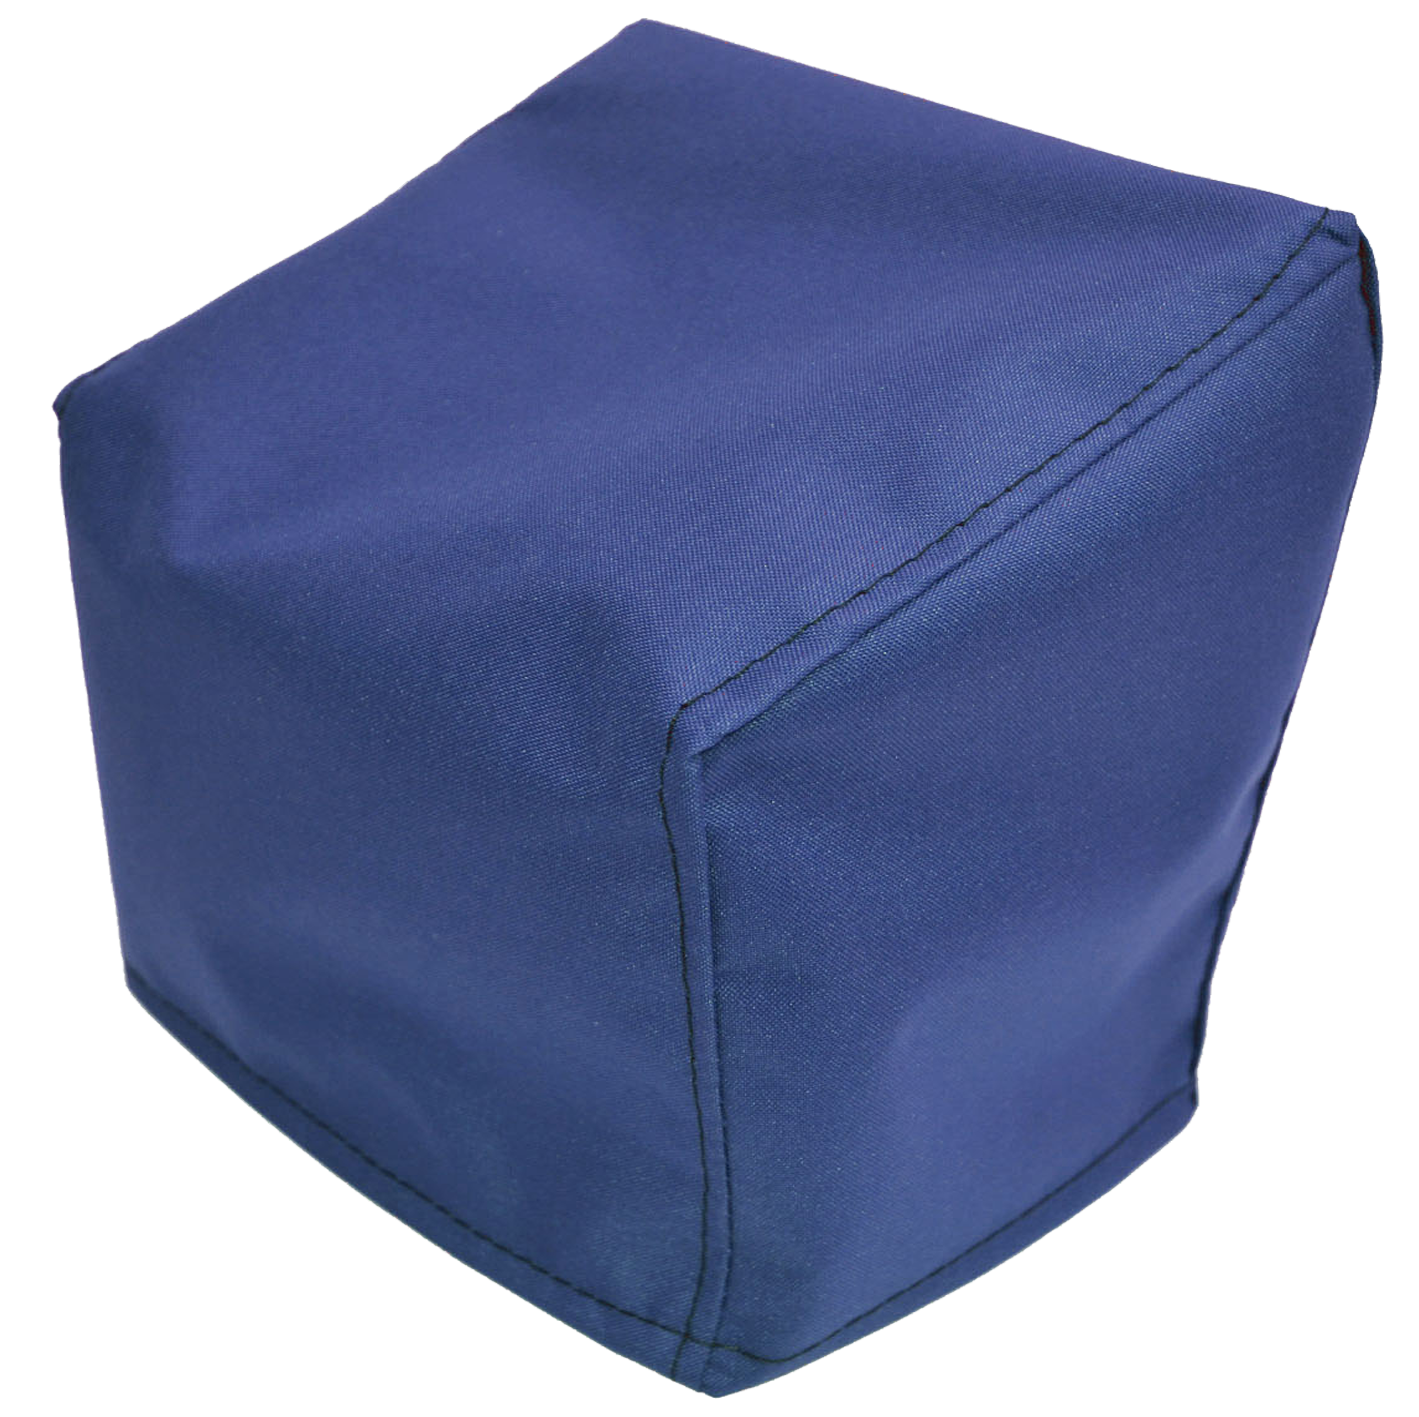 Chair Cover Made To Measure Bags4everything